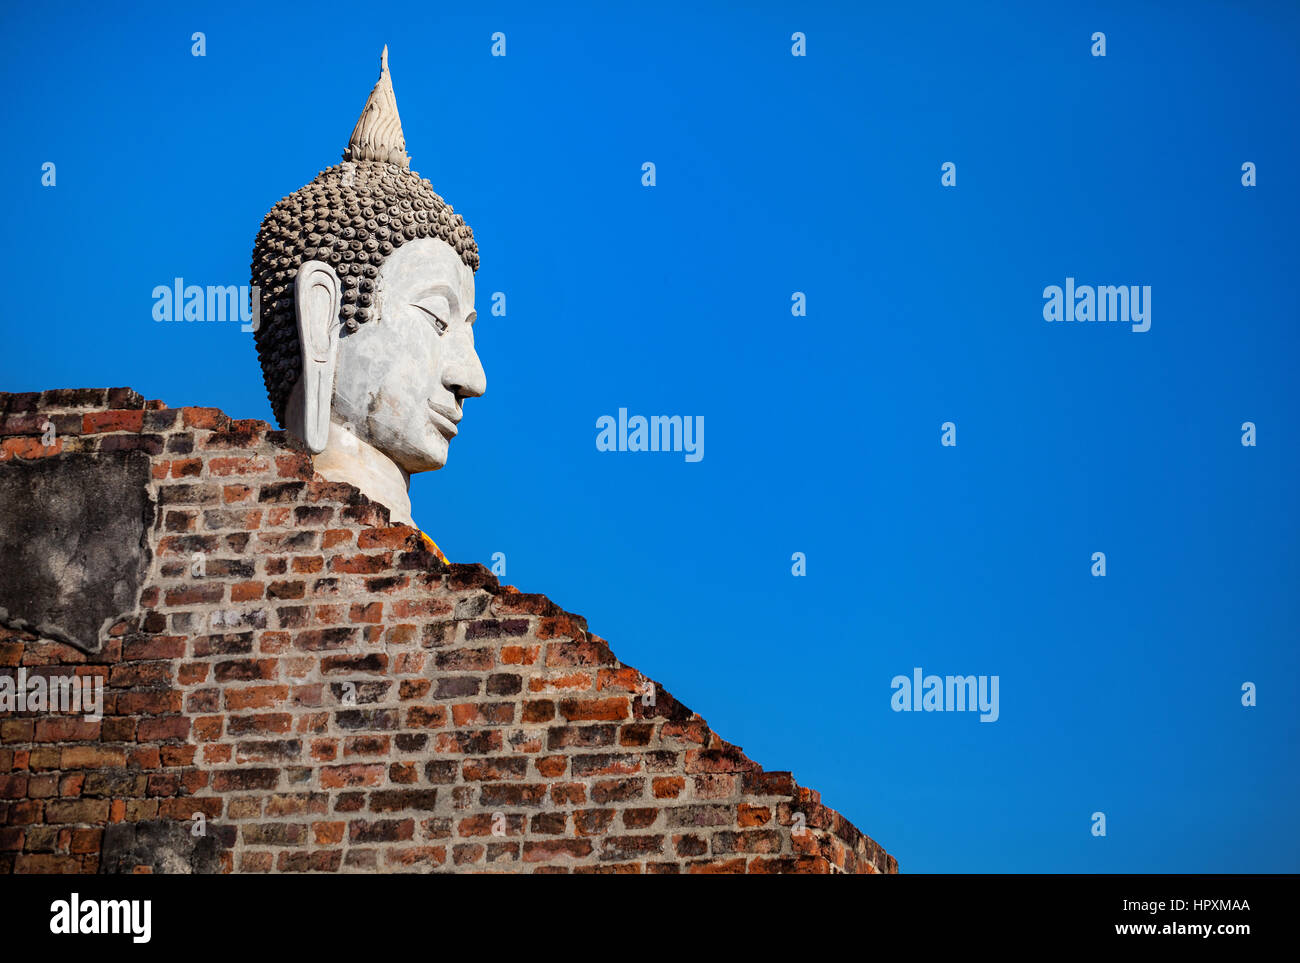 Big Buddha statue in Wat Yai Chai Mongkol monastery at blue sky in Ayuttaya, Thailand Stock Photo